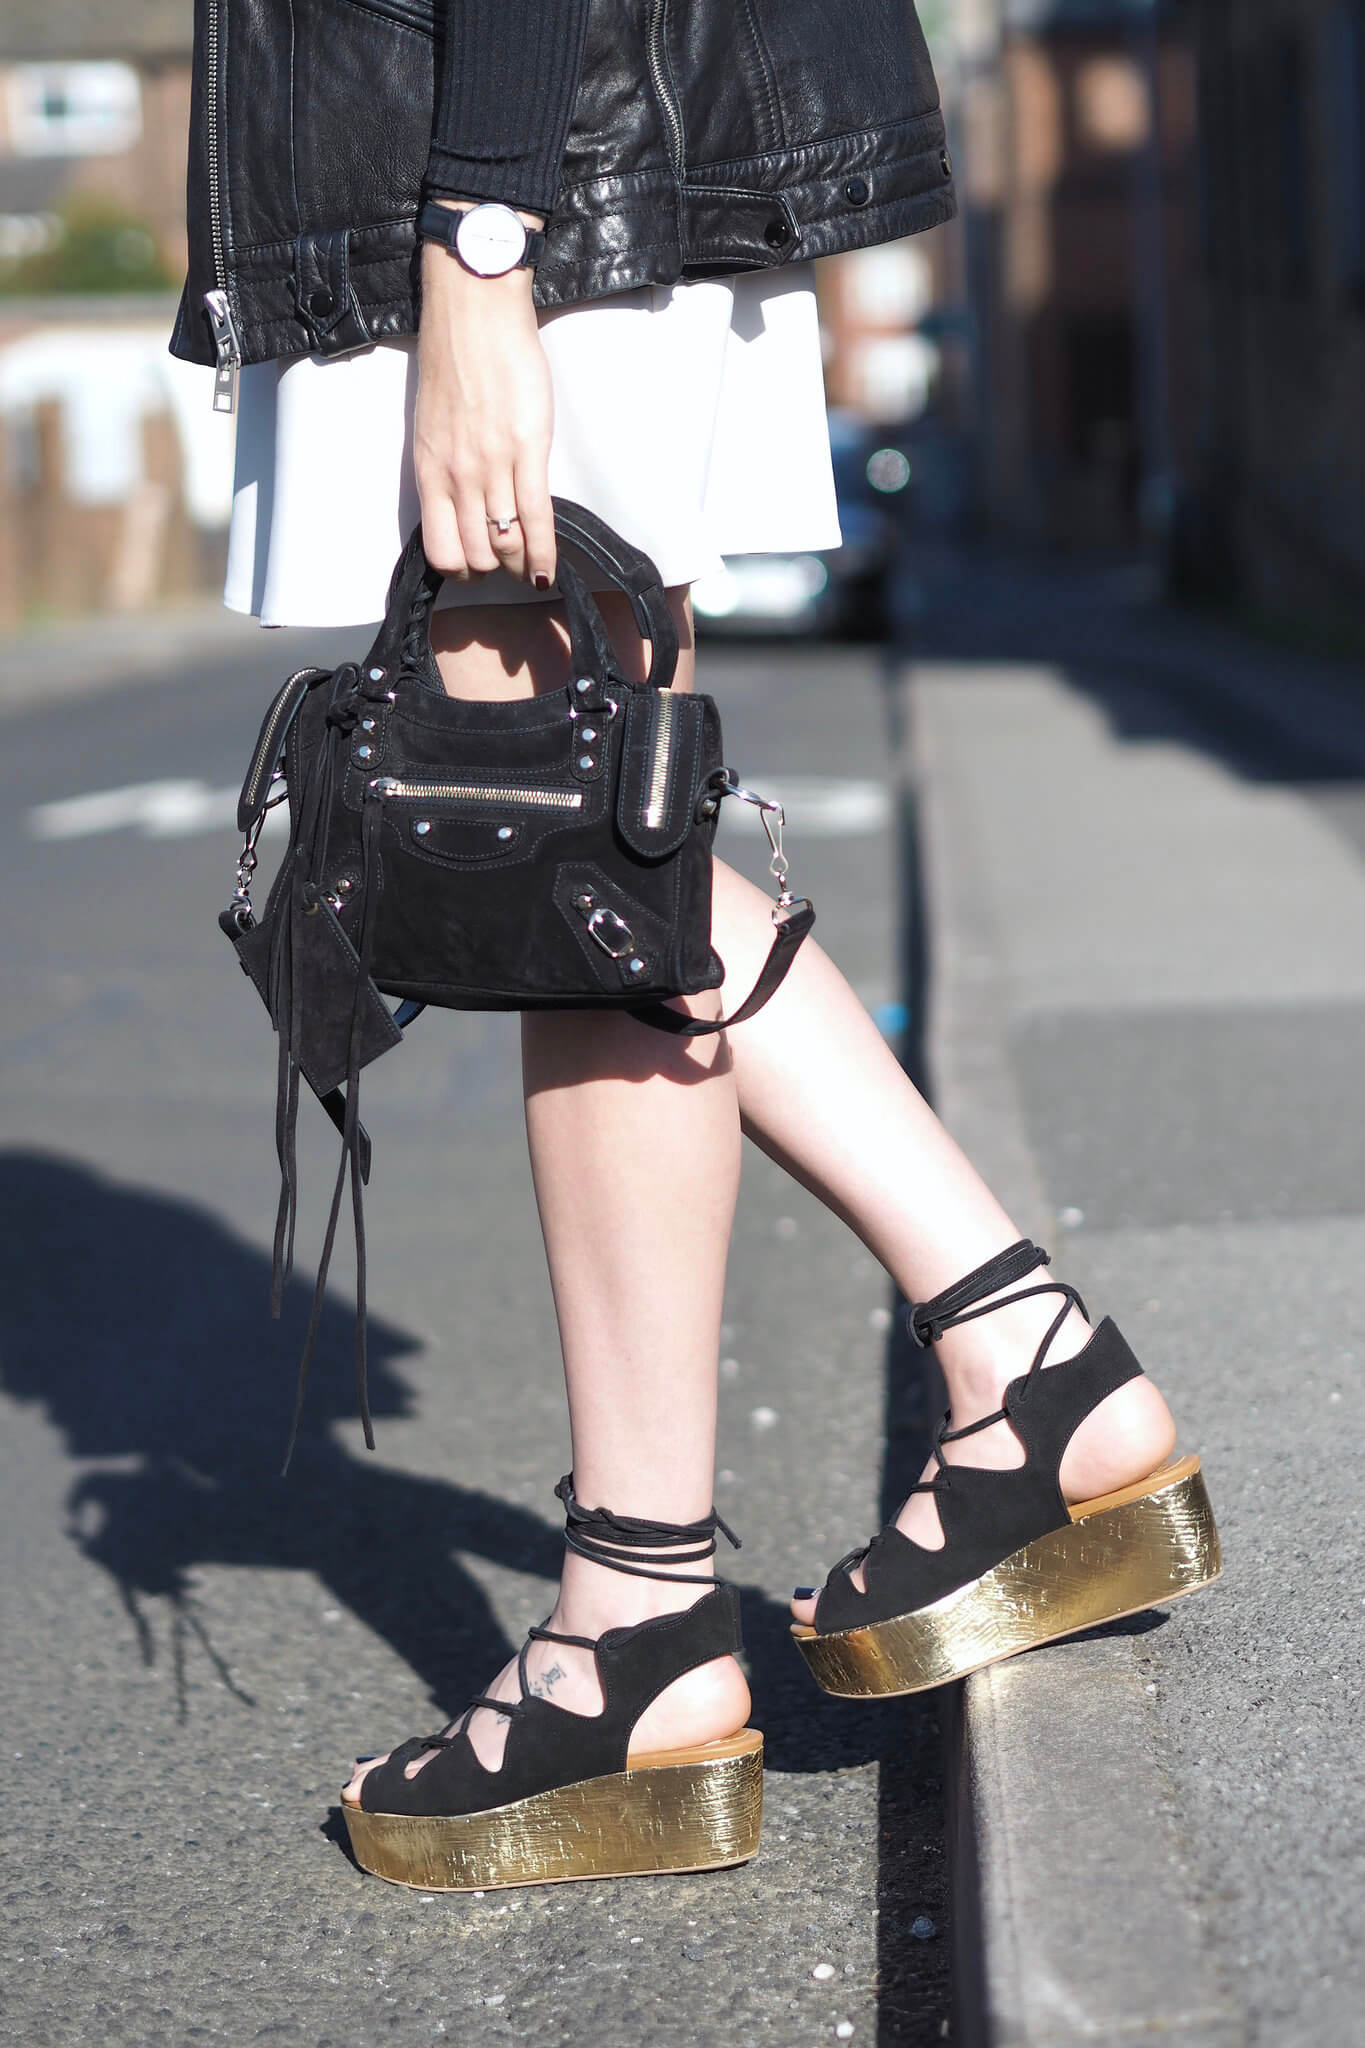 styling Chloe platform Sandals on fashion blog